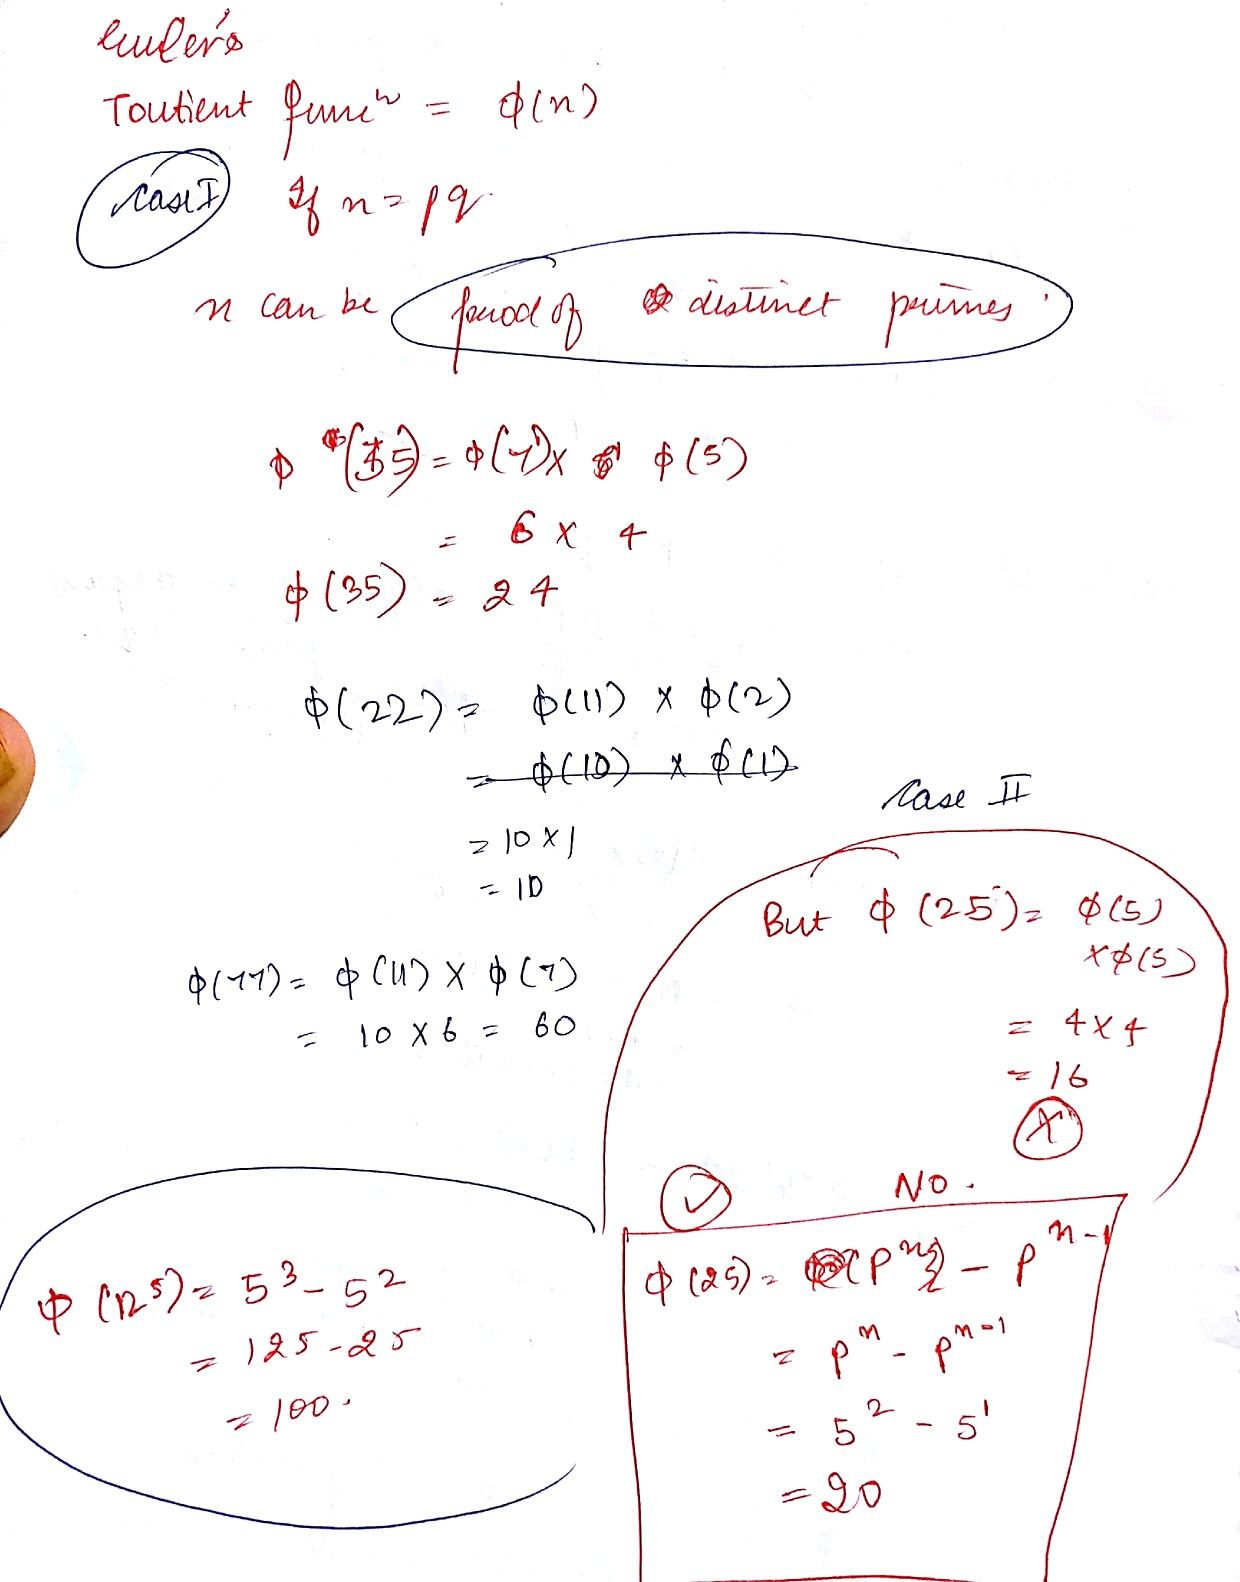 Finding Toutient Function